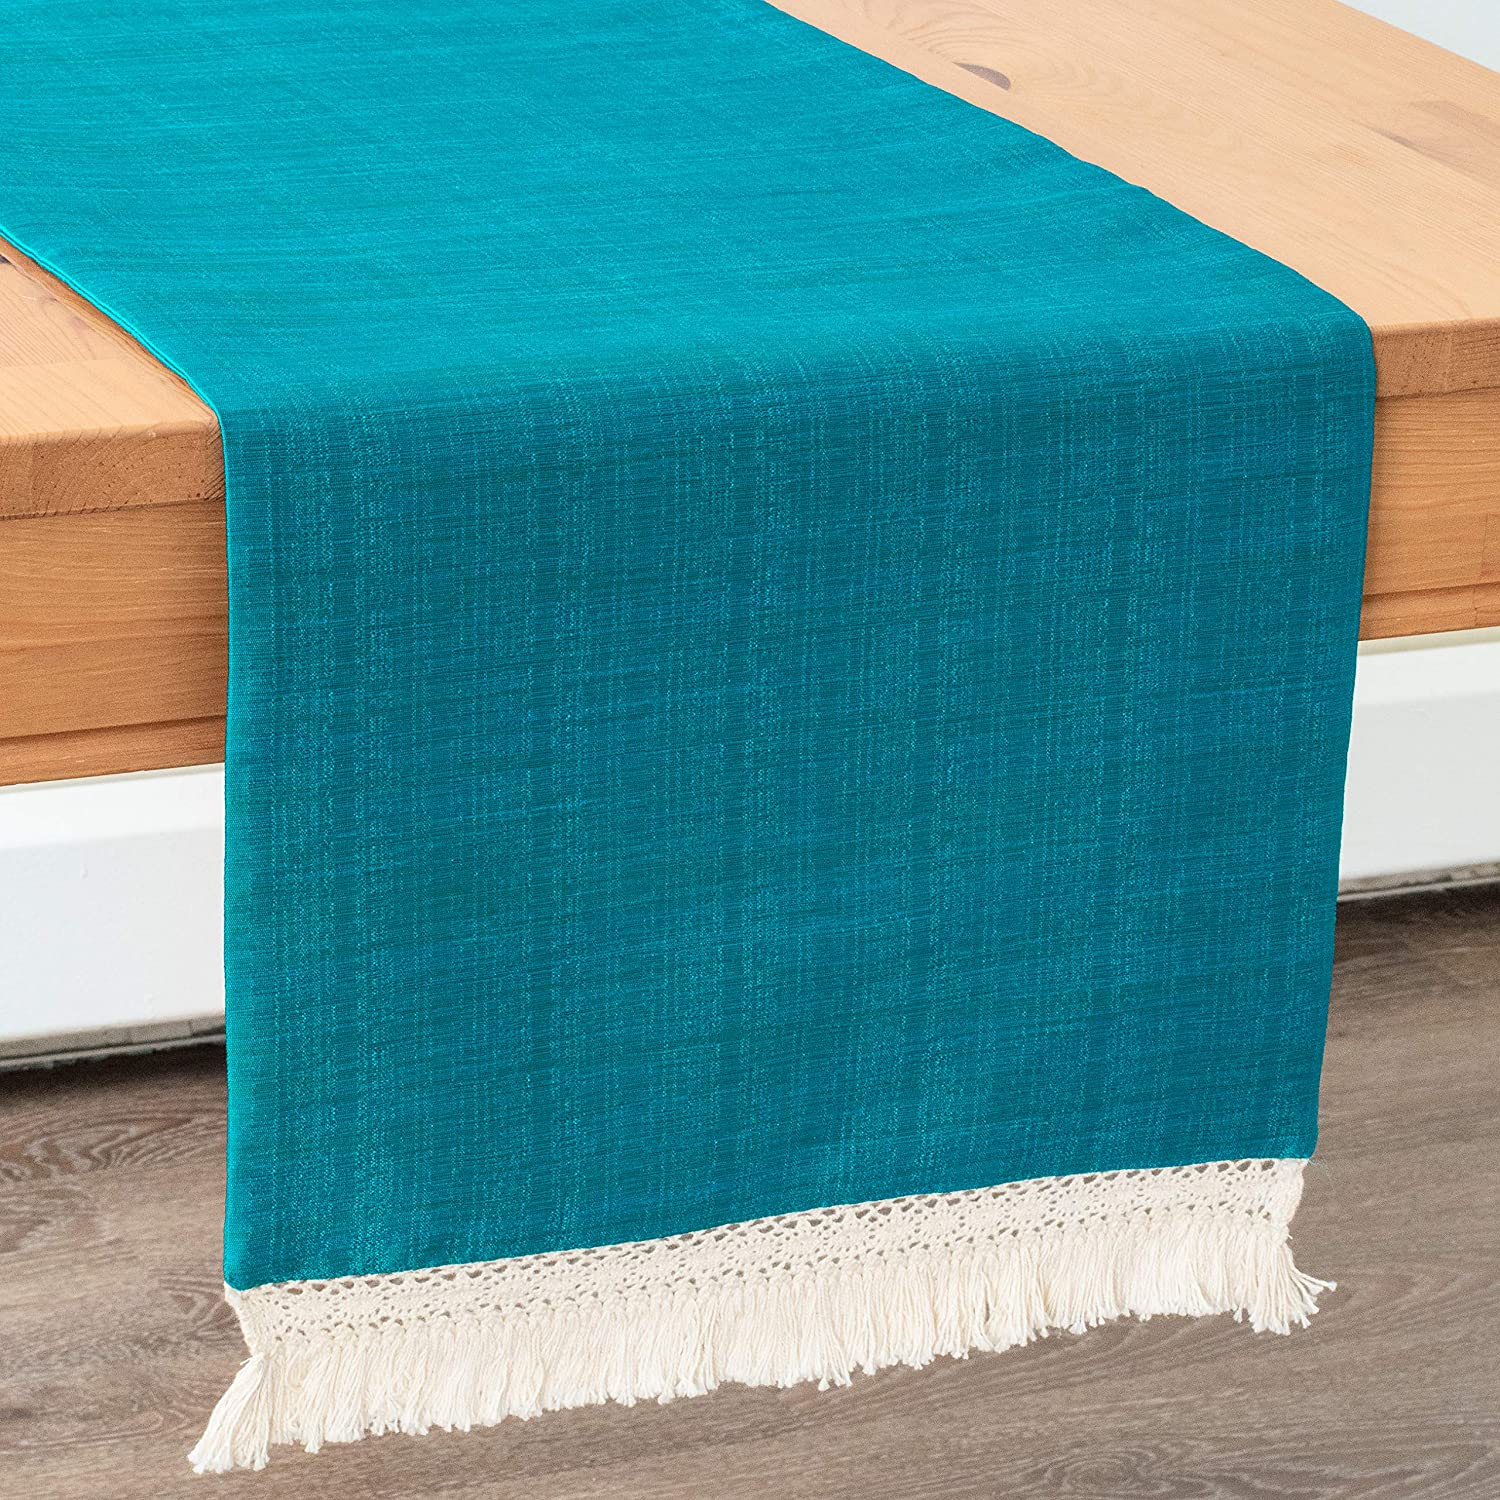 Turquoise Round Table Runners With Macrame Lace Boho Decor (13x64 inch, Pack of 1) Fabric Lined   Properly Finished, No Fray Edges   for Home, Kitchen, Dining Room, Holiday, Wedding Party